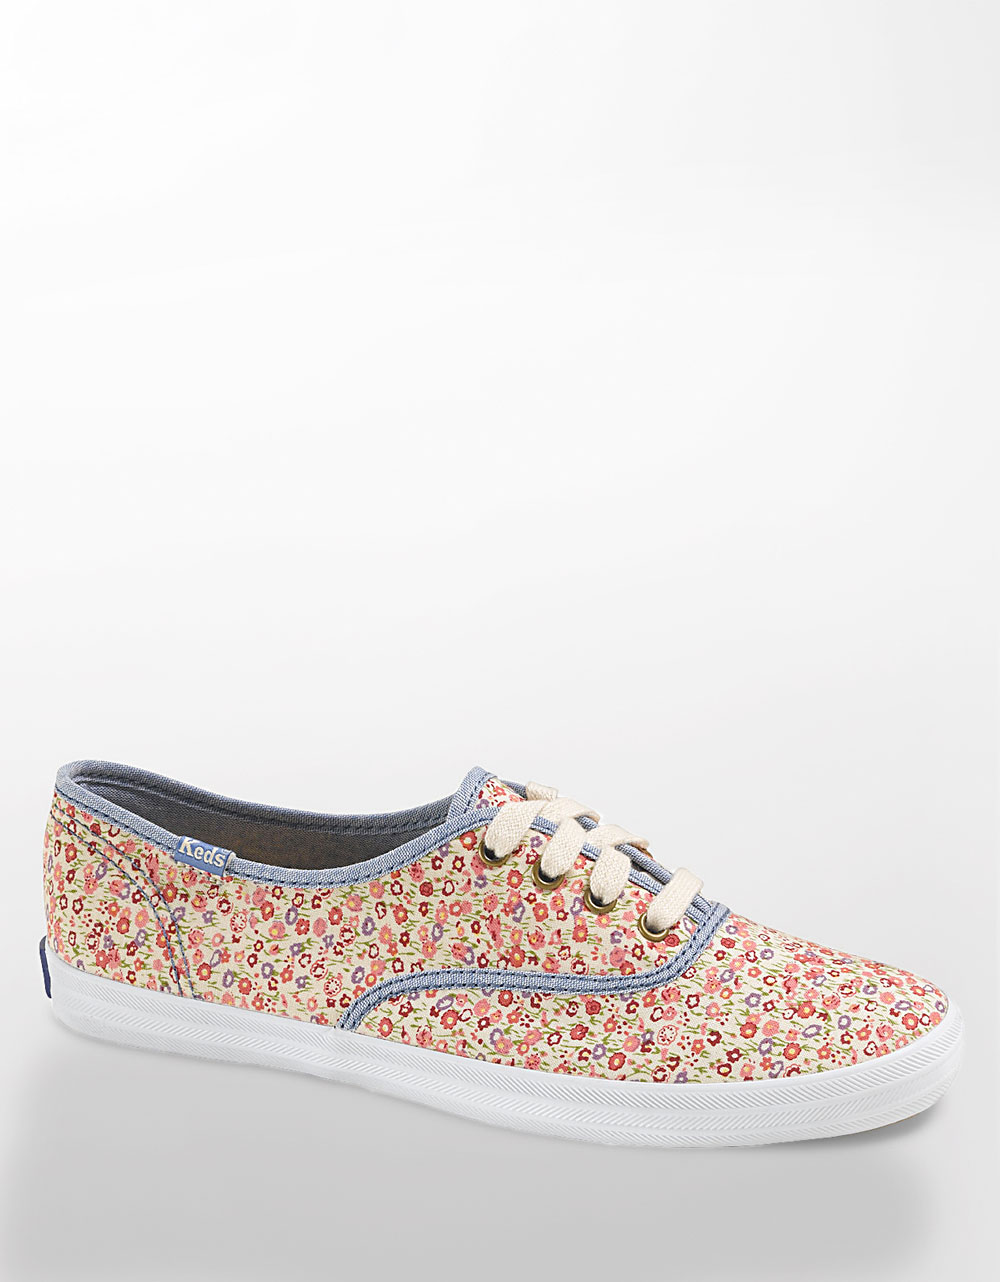 Keds Calico Floral Print Sneakers Lyst